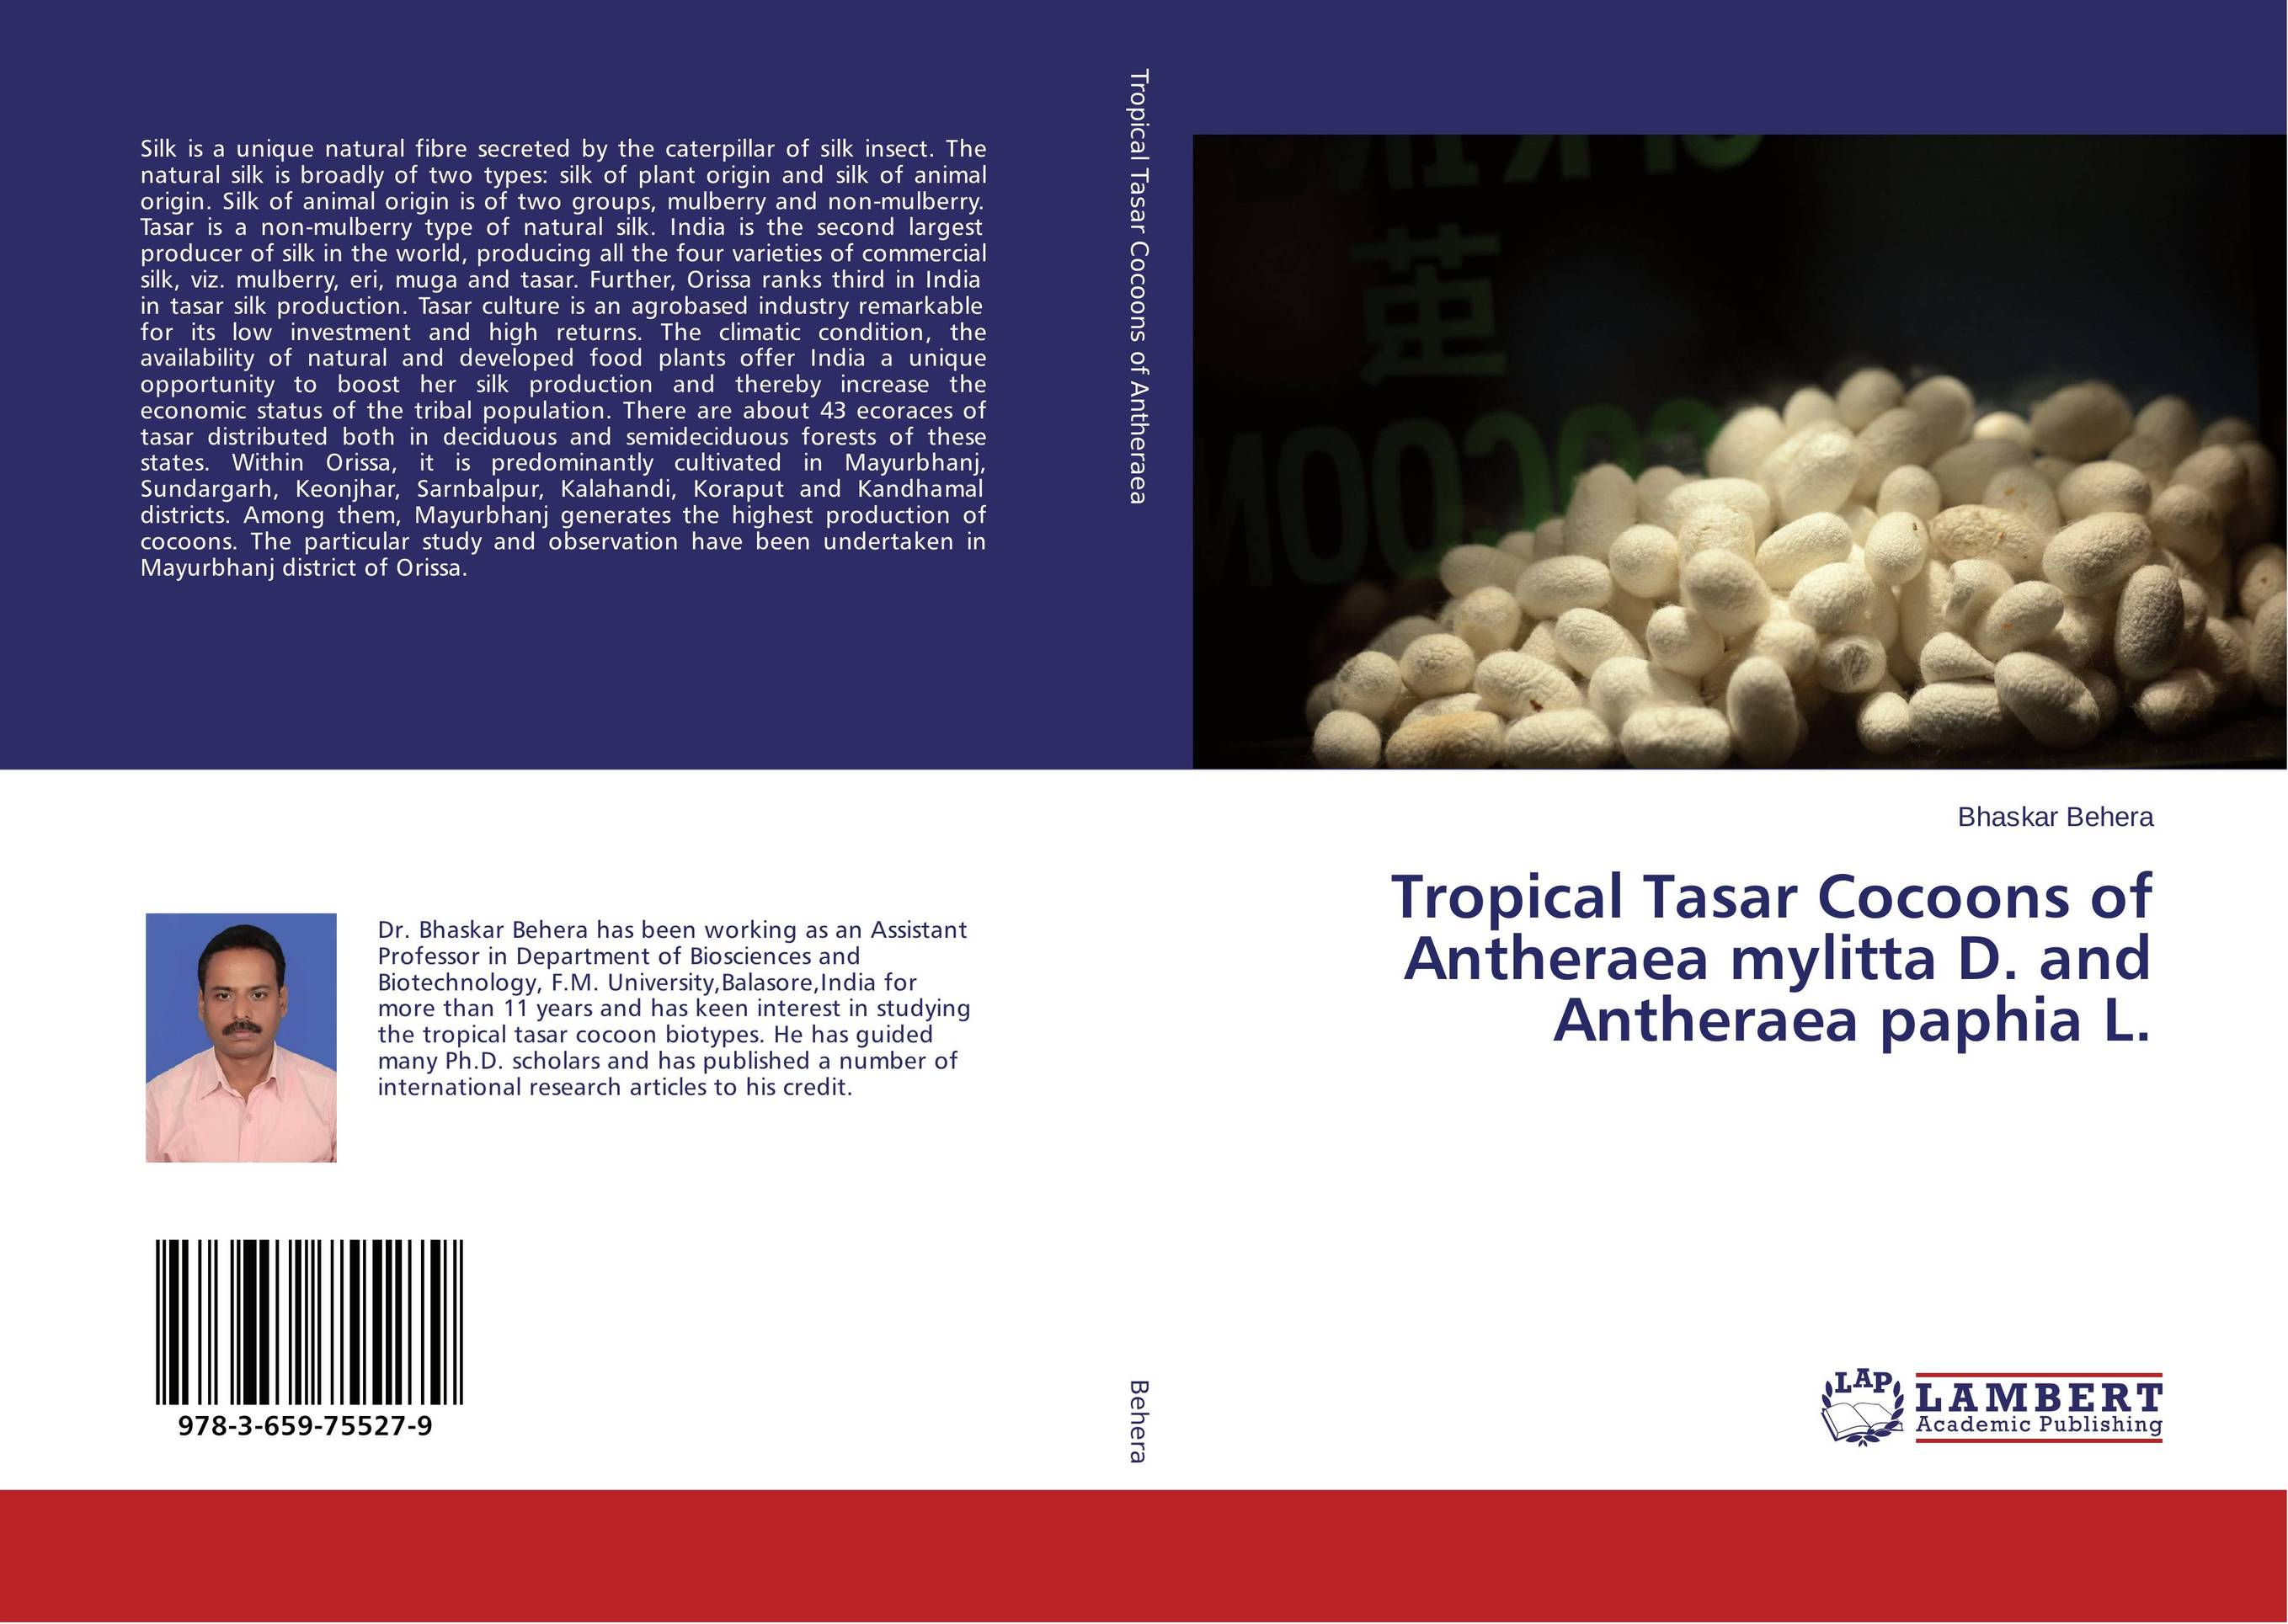 Tropical Tasar Cocoons of Antheraea mylitta D. and Antheraea paphia L. natural enemy fauna in rice wheat system of india